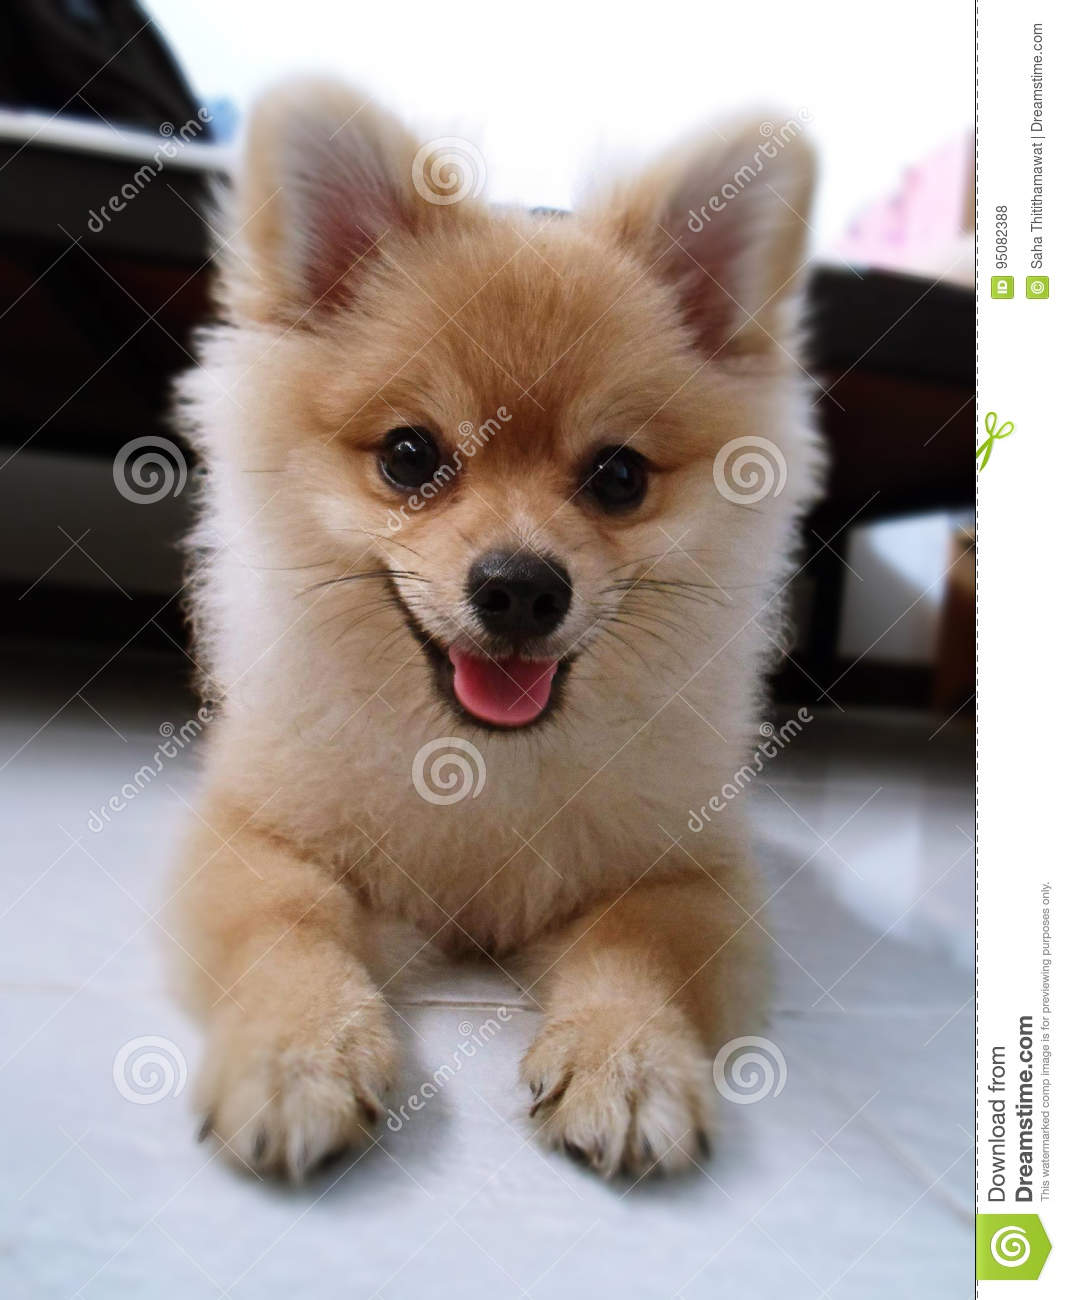 Cute Pomeranian Brown Small Dog Pet Stock Photo Image Of